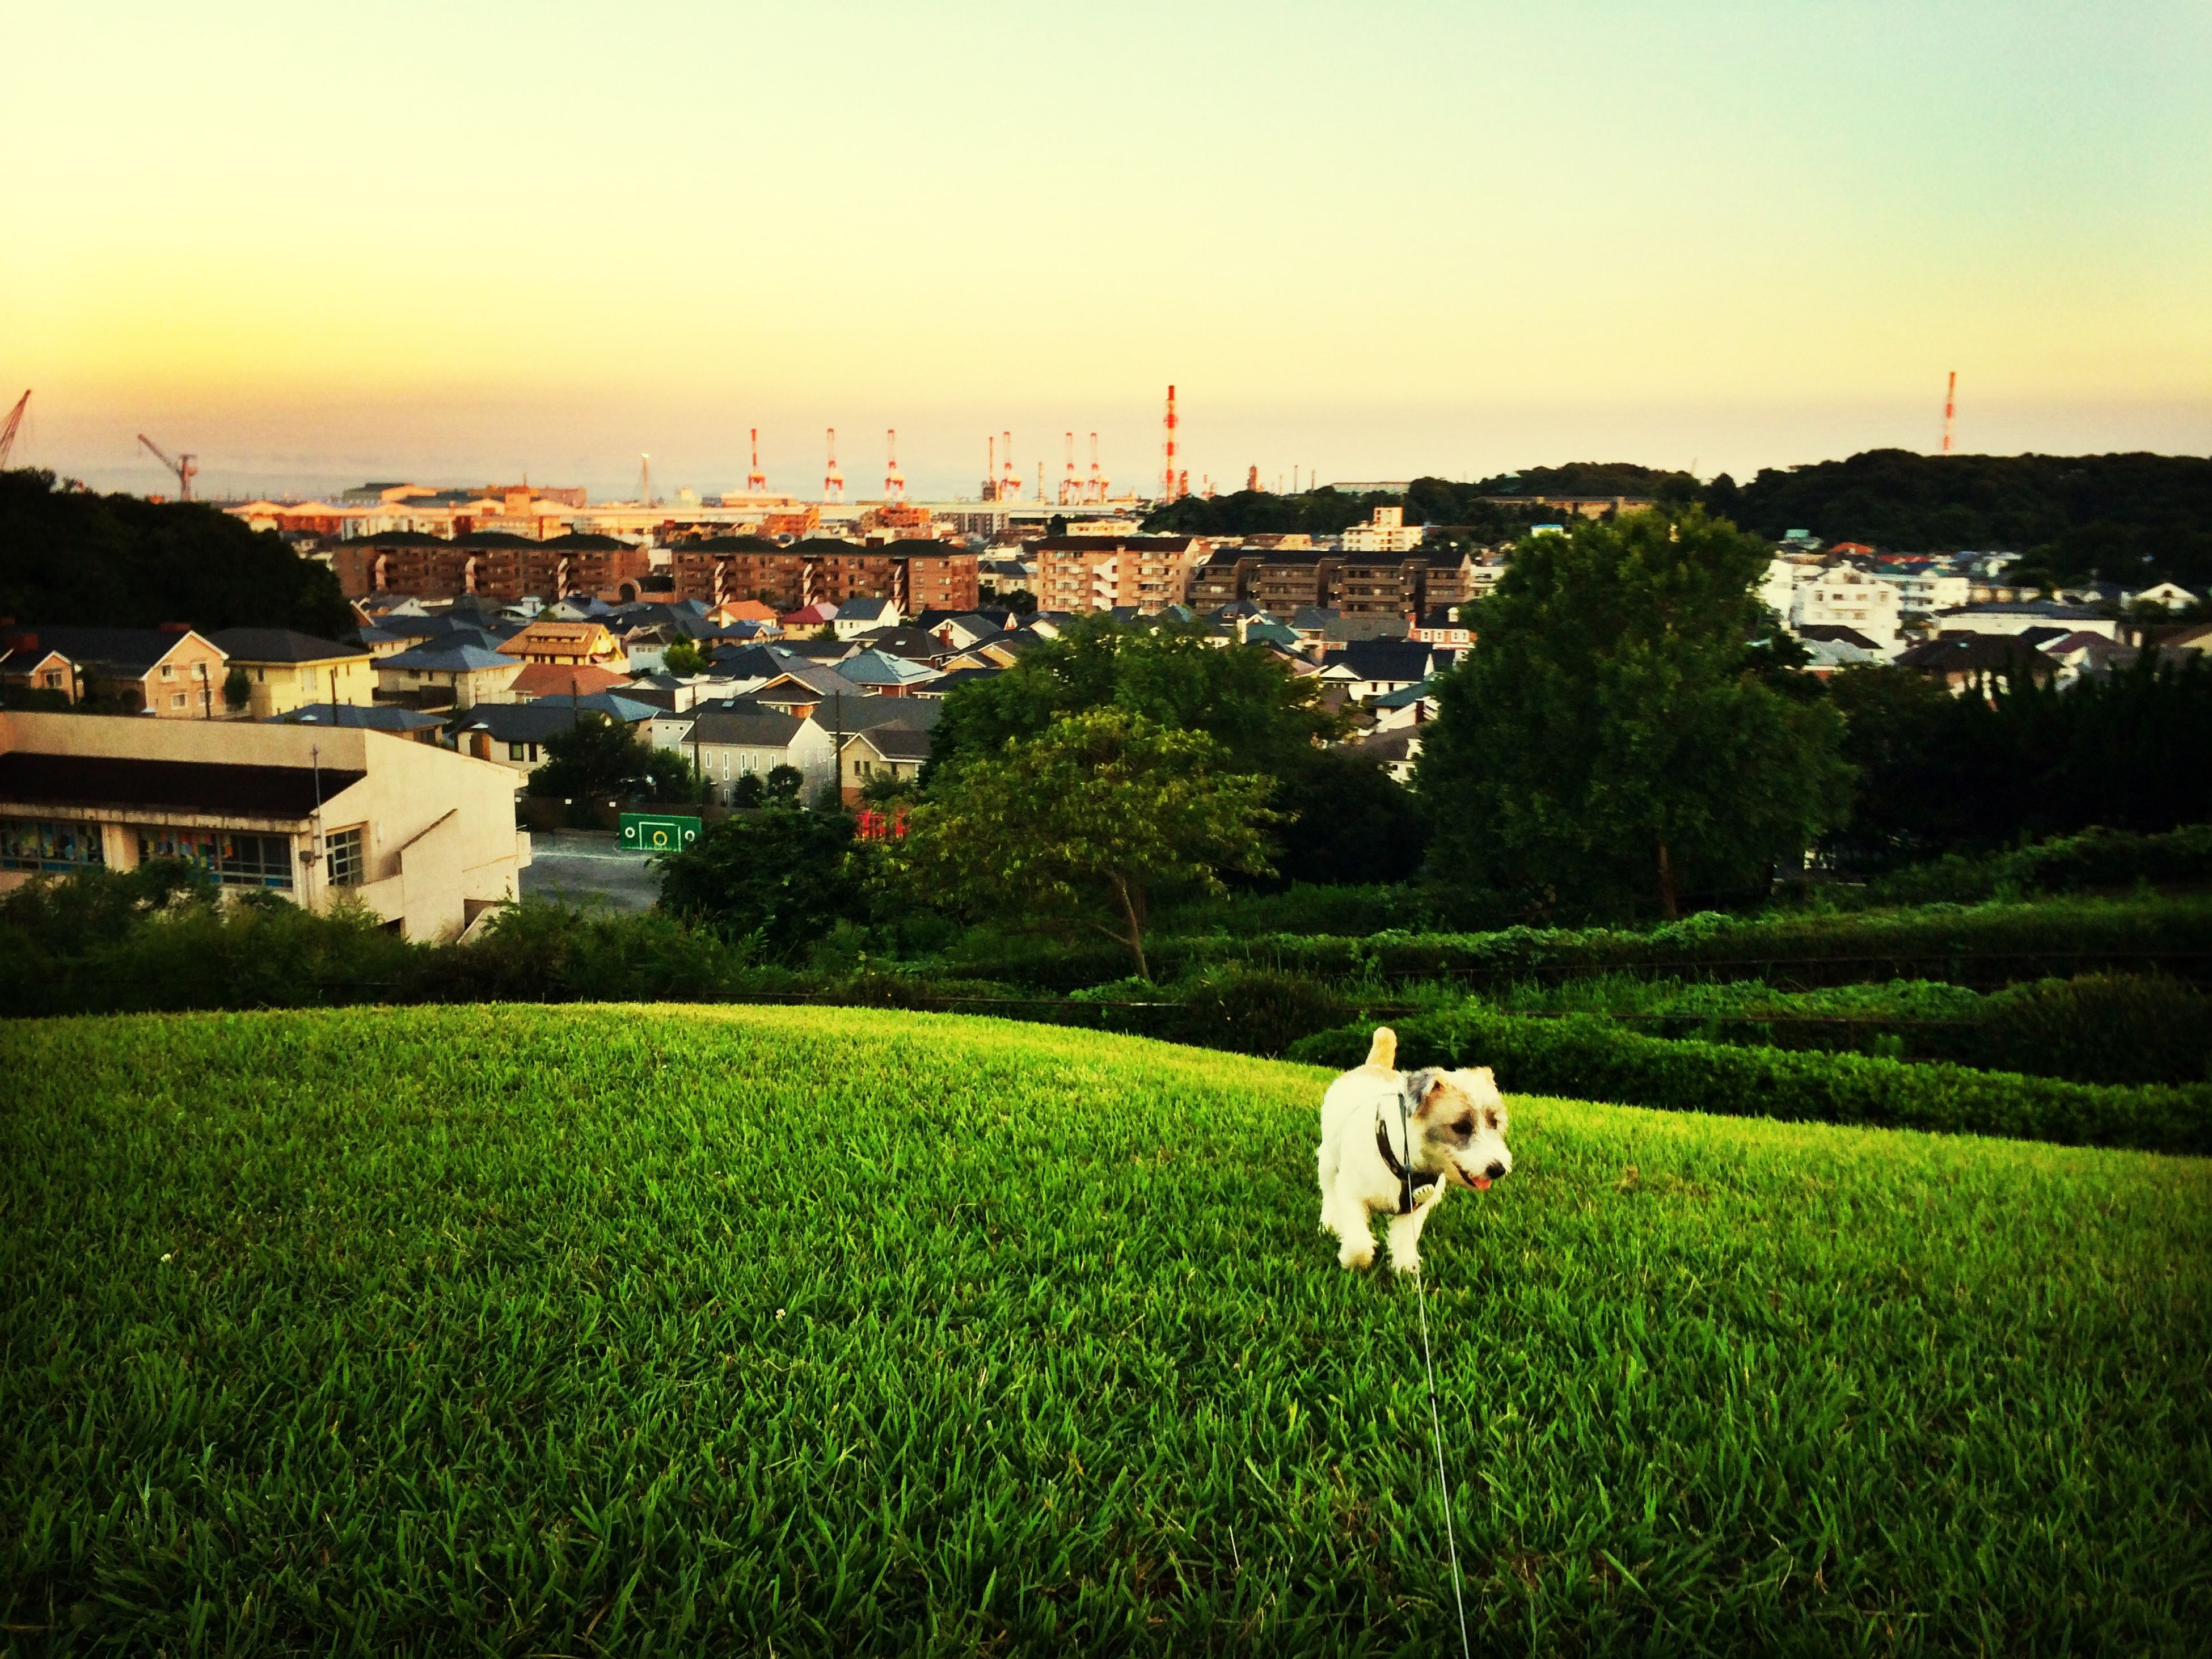 animal themes, domestic animals, grass, building exterior, architecture, mammal, built structure, one animal, field, sky, pets, house, grassy, clear sky, sunset, landscape, nature, no people, outdoors, copy space